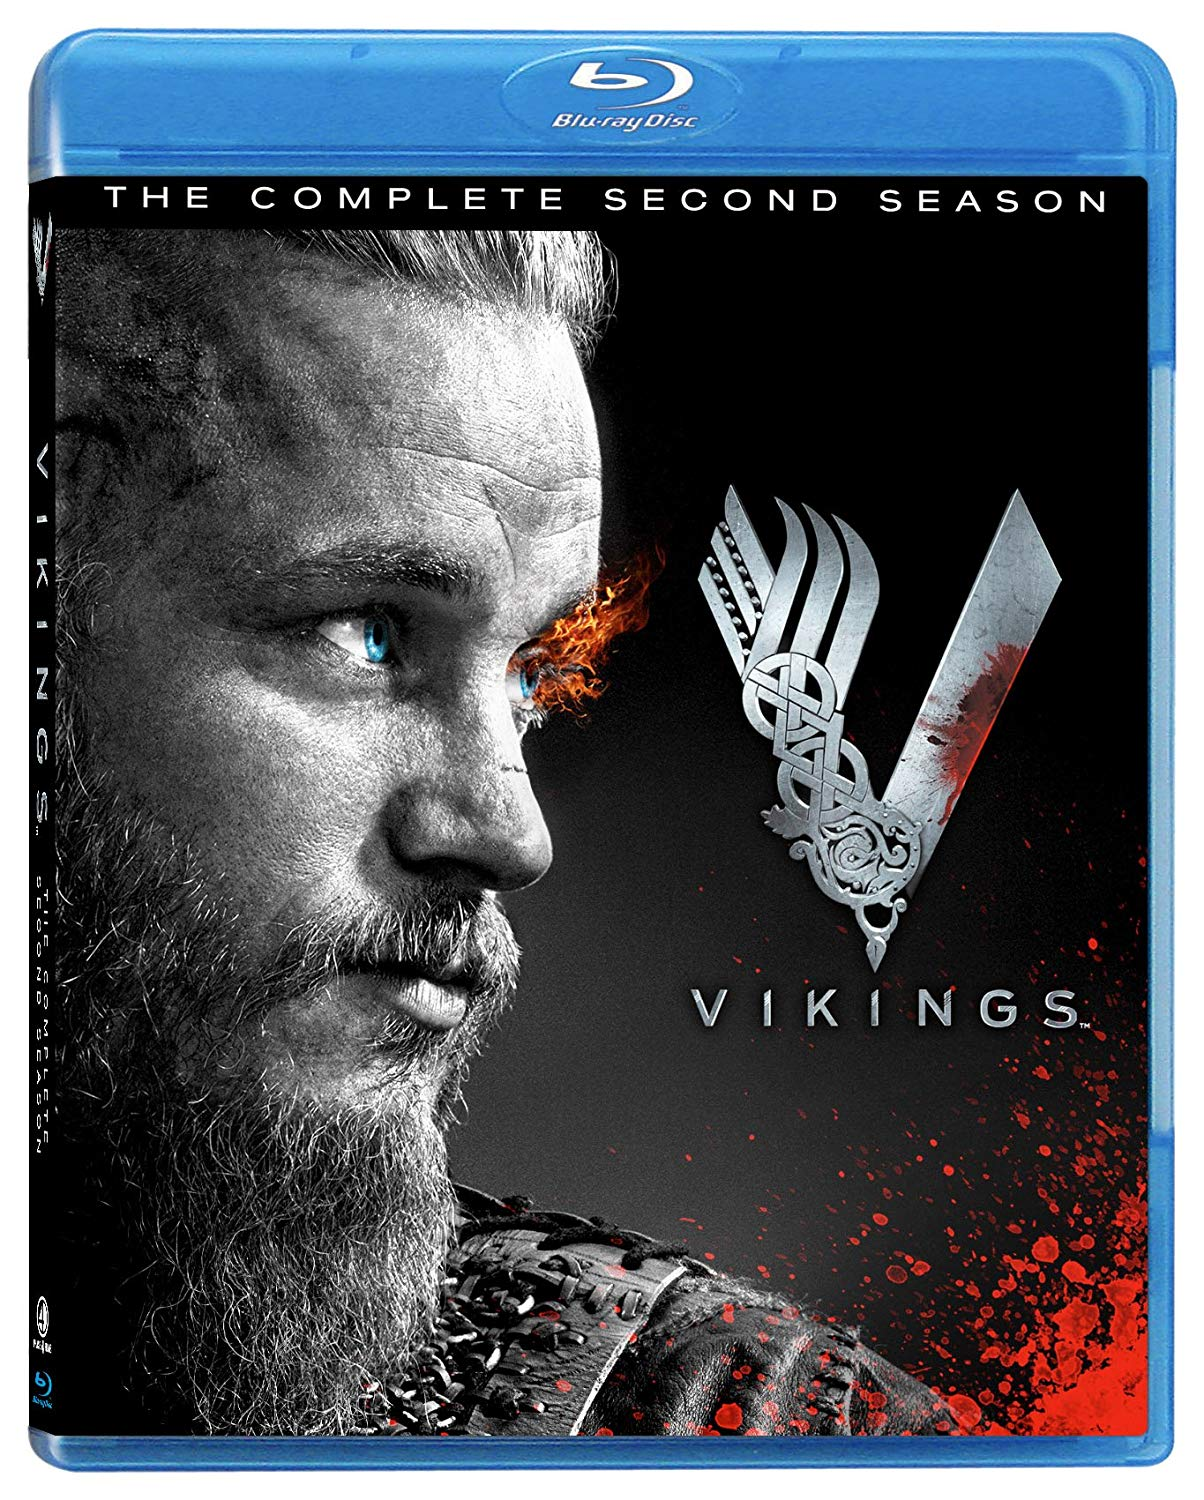 Vikings S02 Dual Audio Complete Series BRRip 480p 100Mb x265